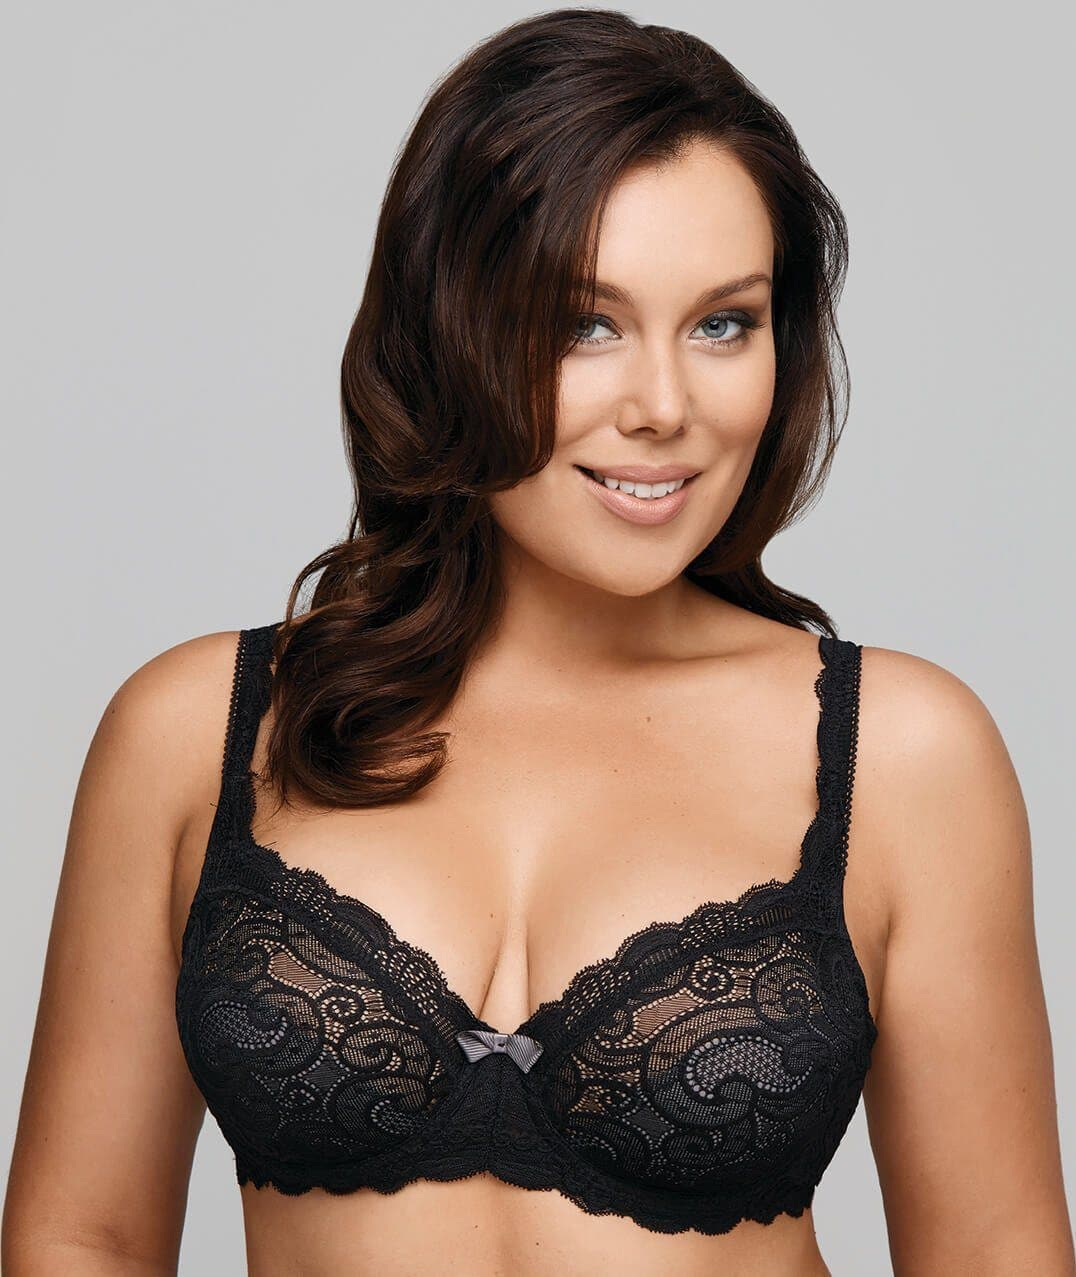 a320999eeebda Playtex Beautiful Lace & Lift Underwire Bra - Black - Curvy